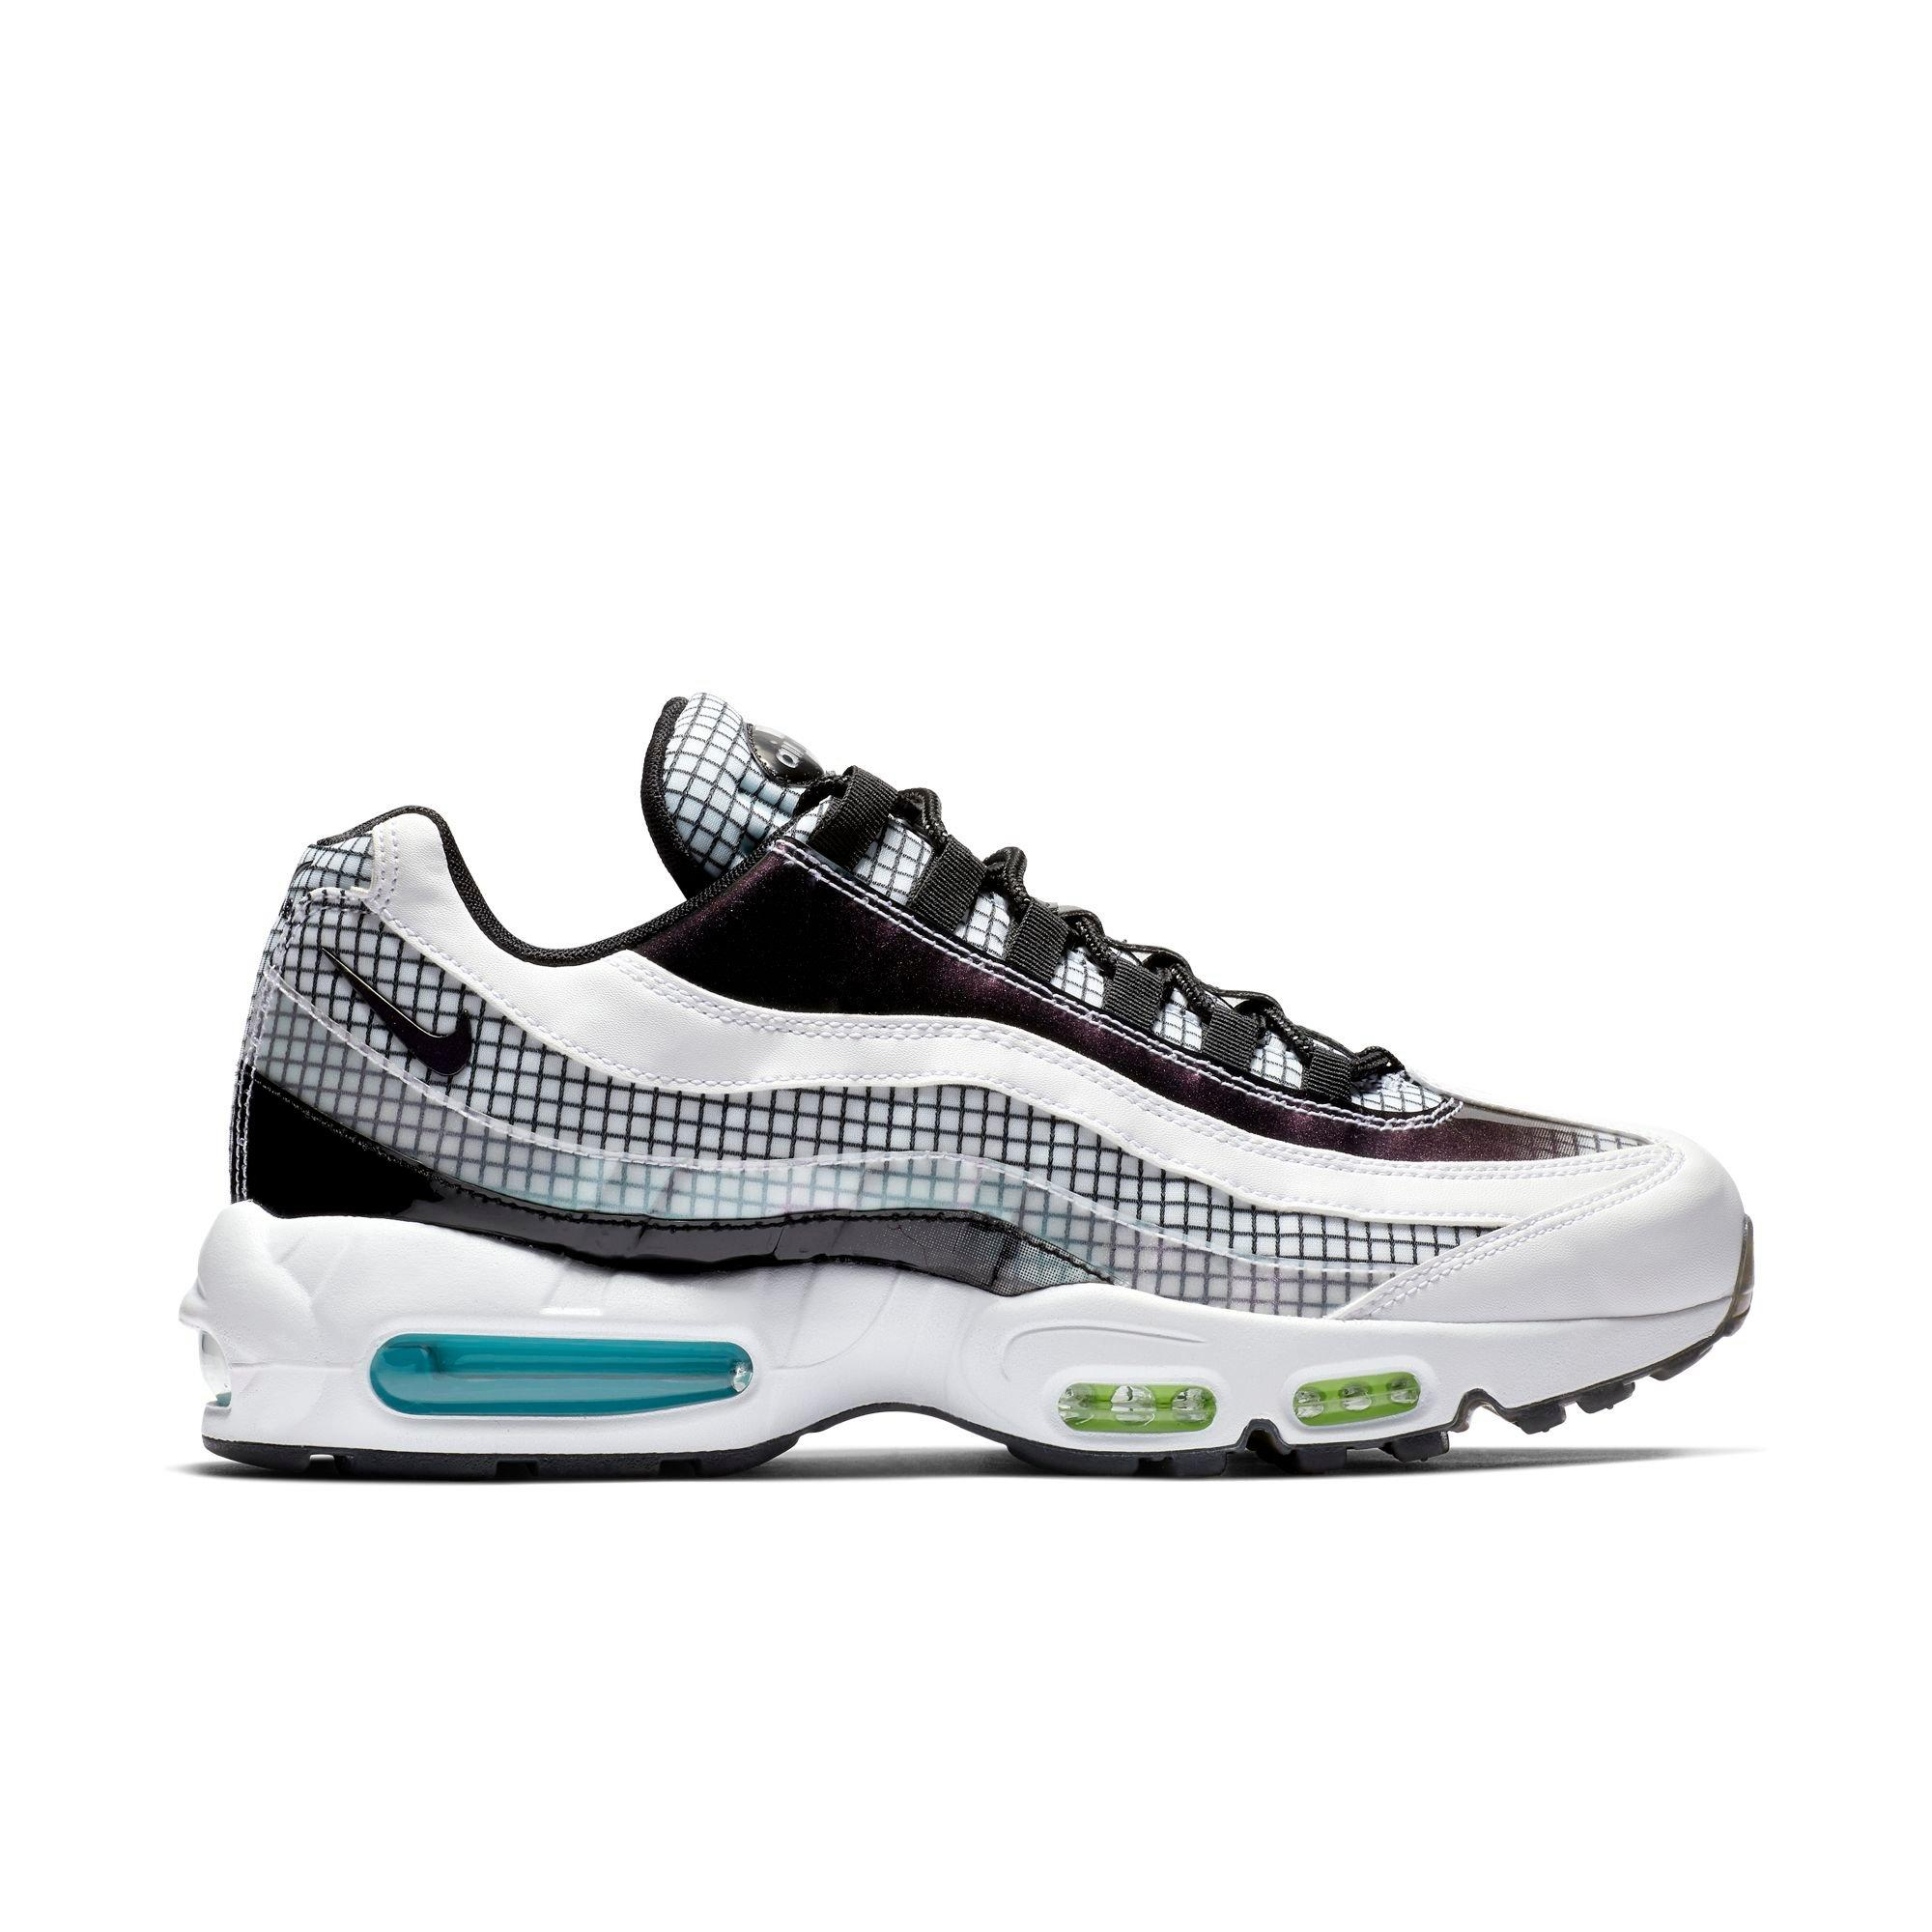 Air Max 95 Nike Air MaxHibbettCity Gear Nike Air MaxHibbett City Gear